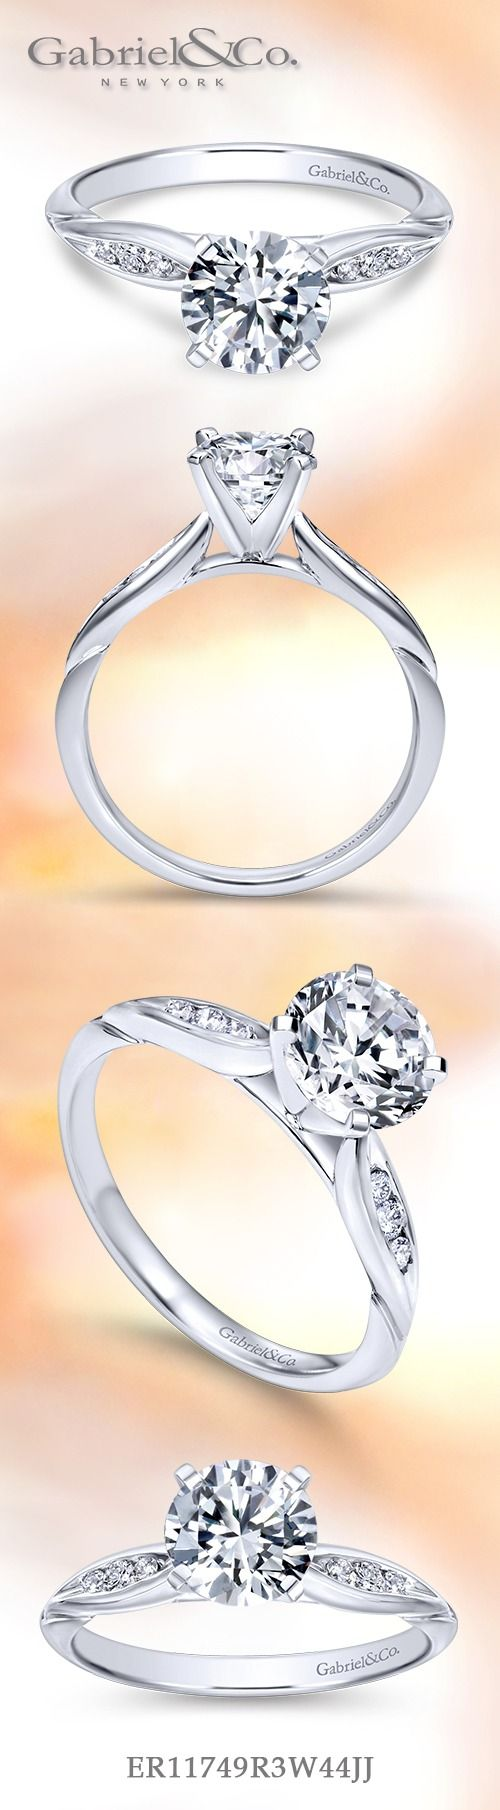 Gabriel & Co. - Voted #1 Most Preferred Fine Jewelry and Bridal Brand. Beautiful, classic and affordable White Gold Round Straight Engagement Ring.